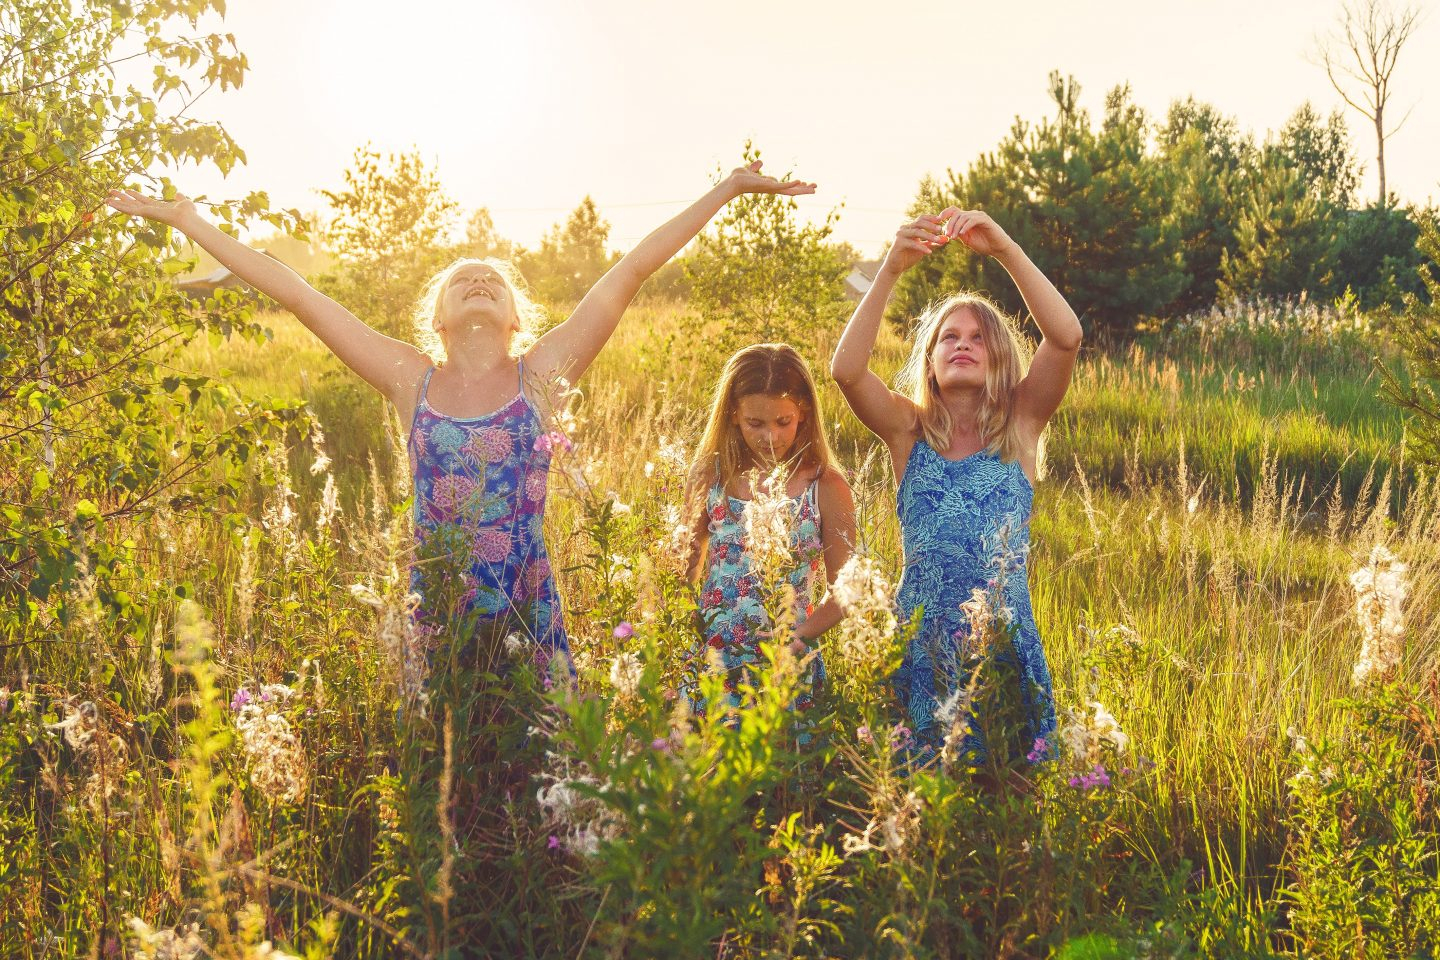 How to raise an environmentally conscious child three children in a field with the sunset behind them